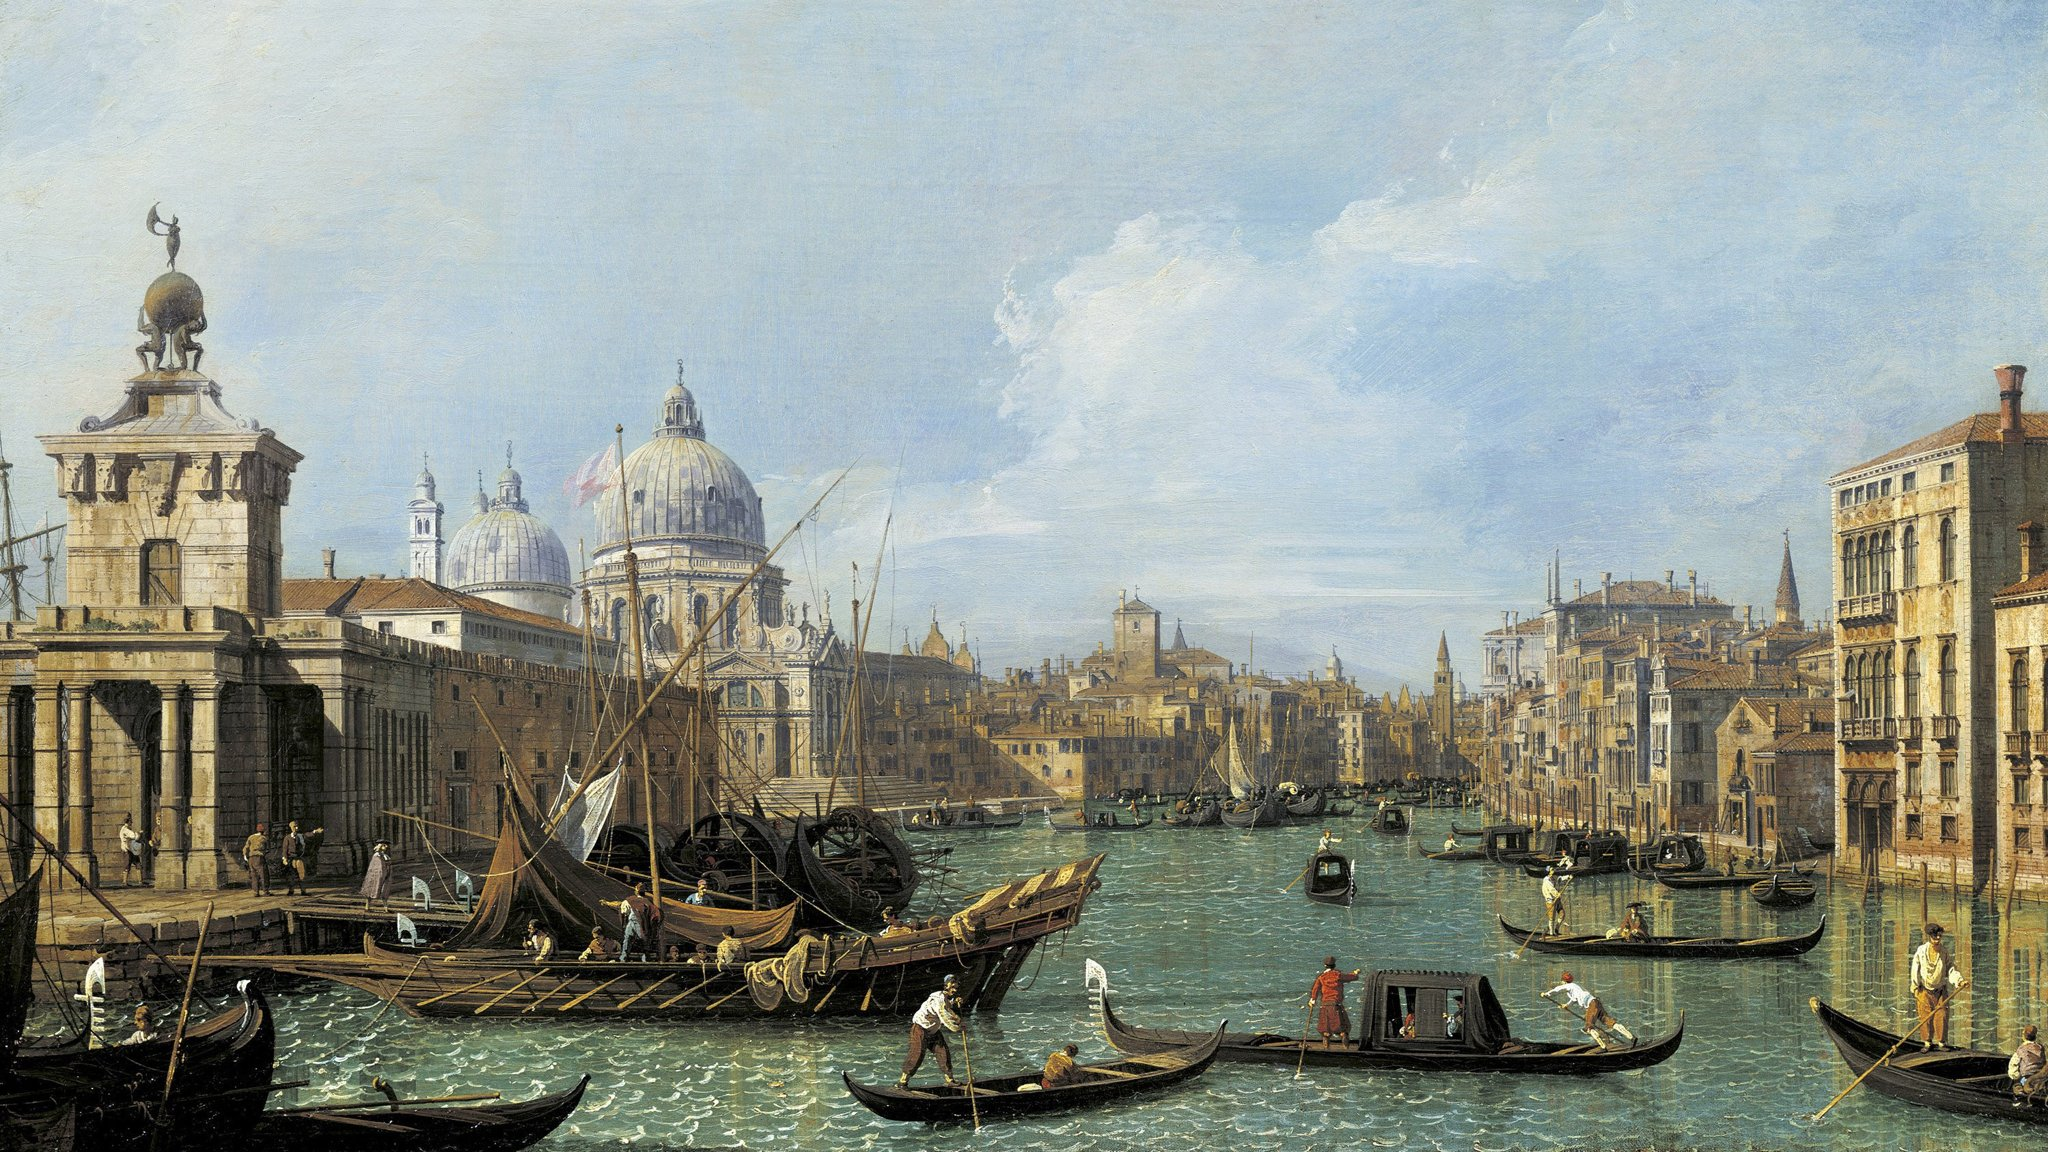 Vodafone Wallpaper Hd Canaletto Visions Of A Venice Even Better Than The Real Thing